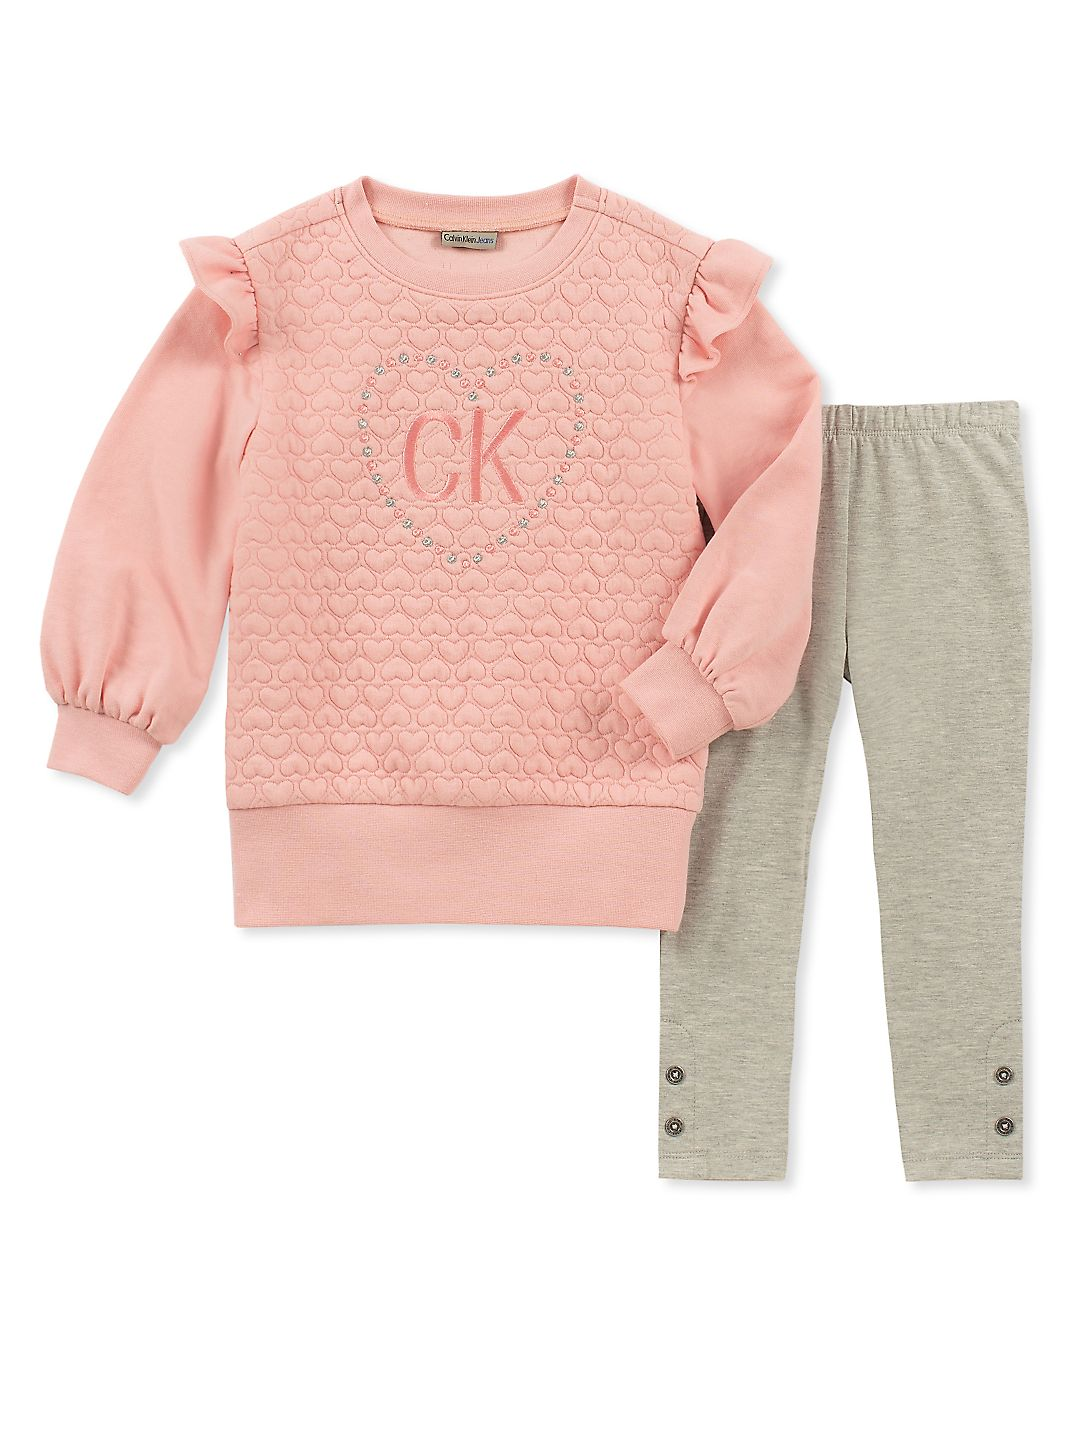 Little Girl's Two-Piece Quilted Top & Heathered Leggings Set